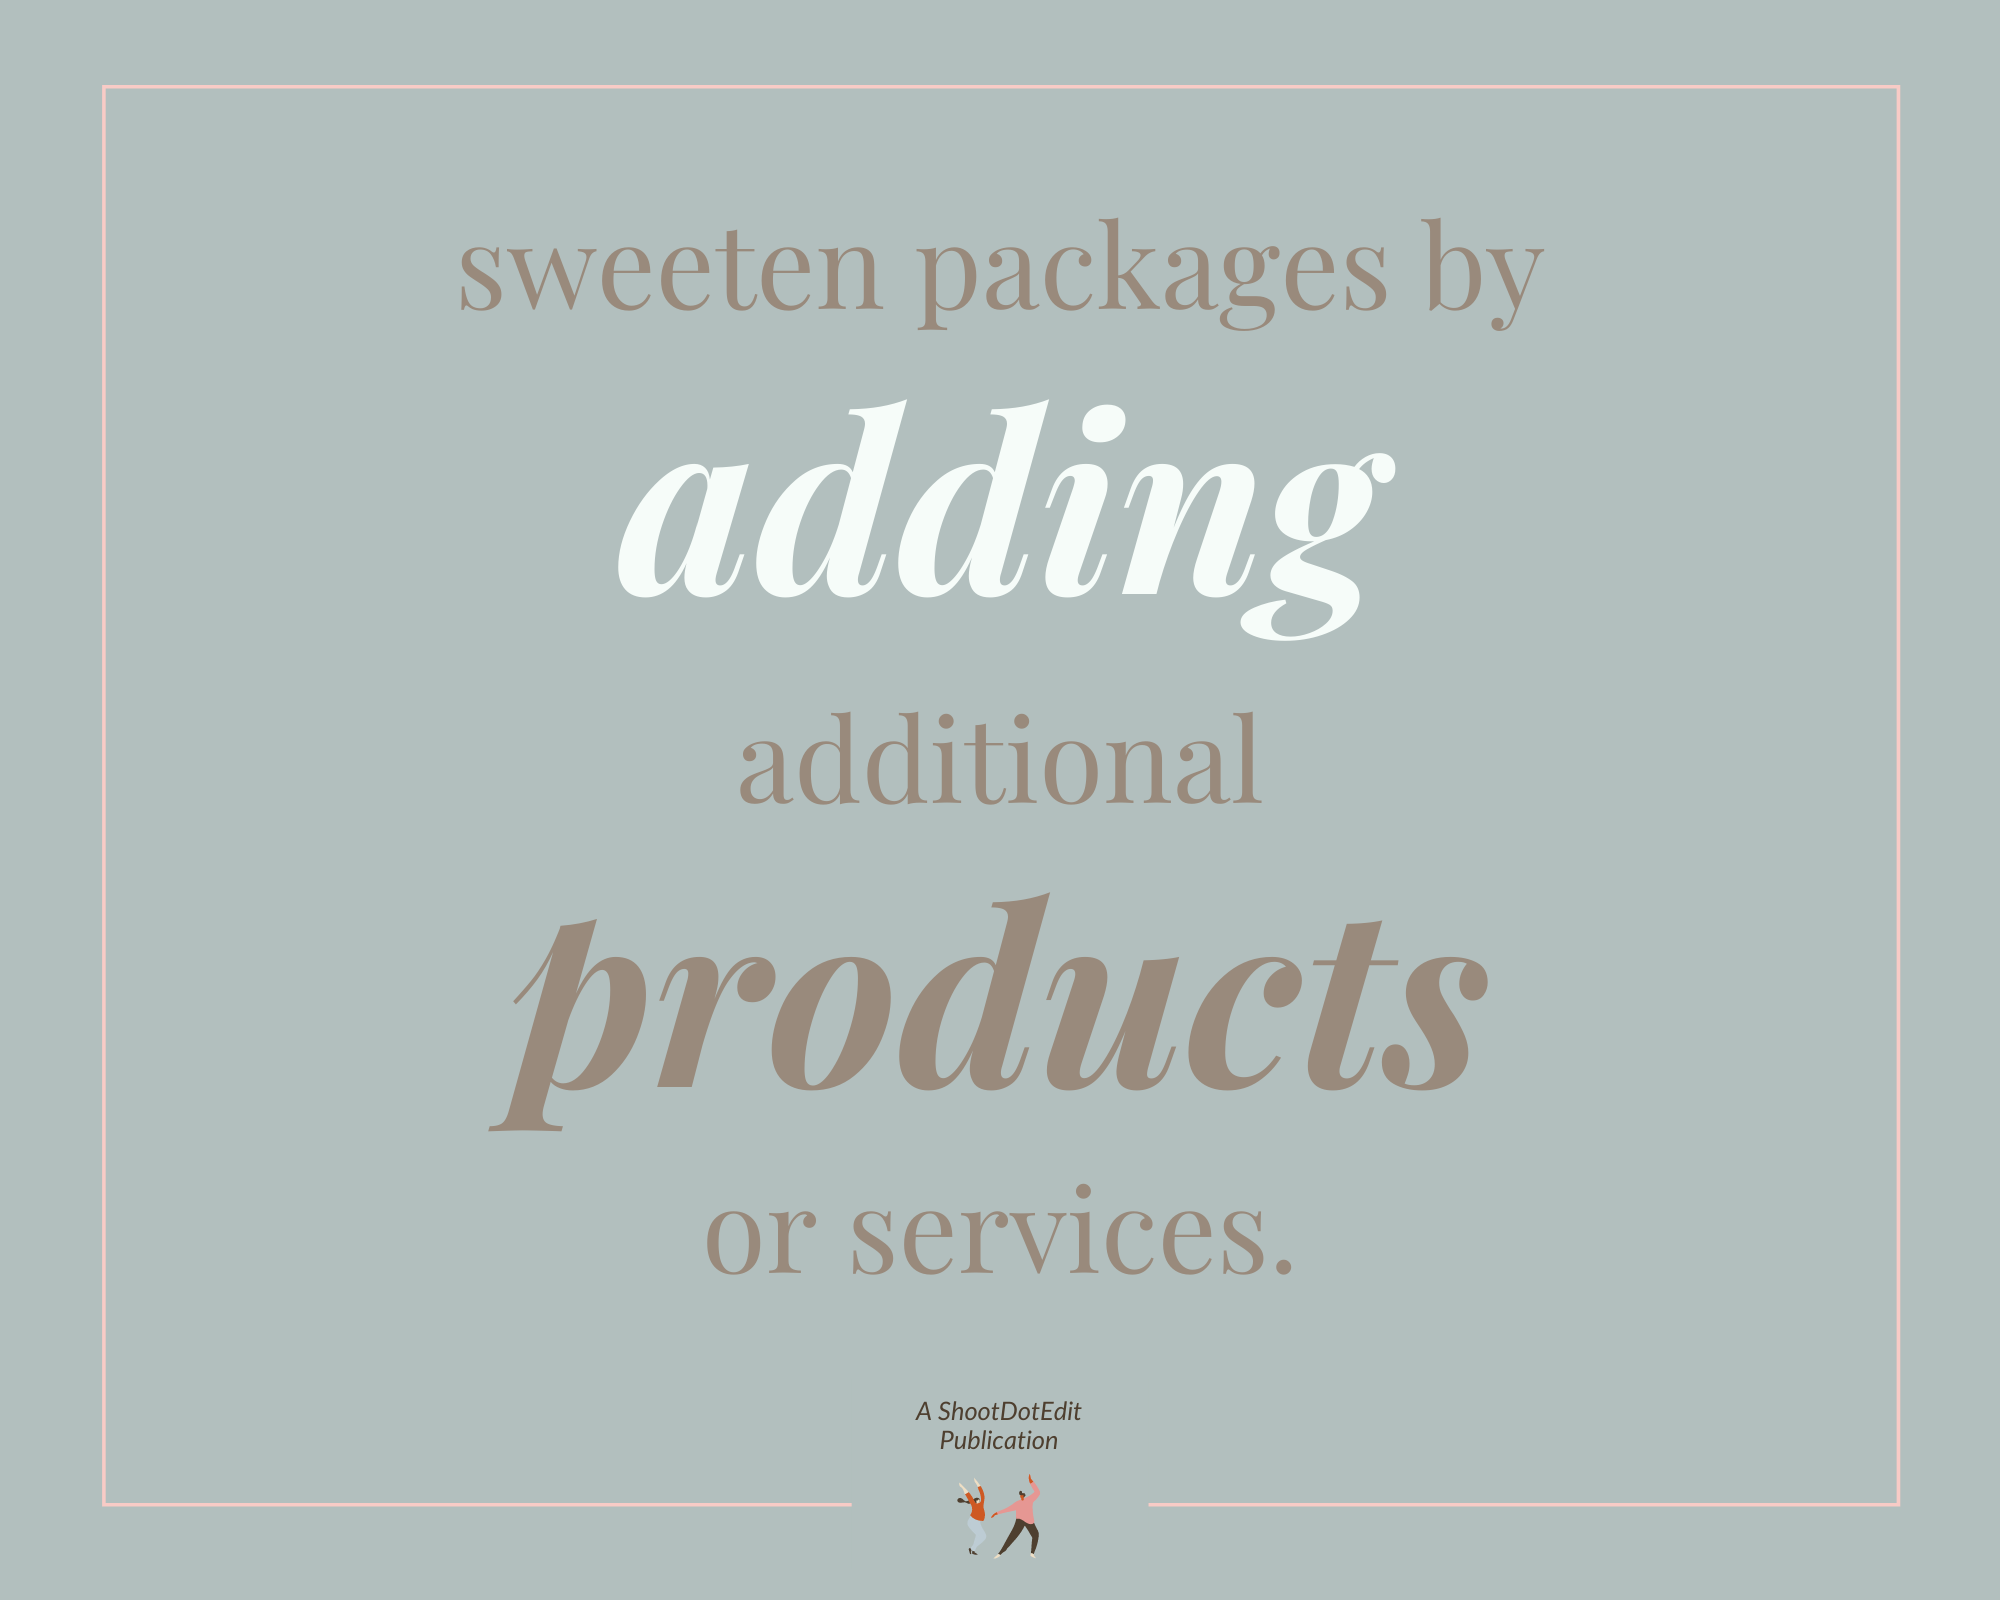 Infographic - Sweeten packages by adding additional products or services